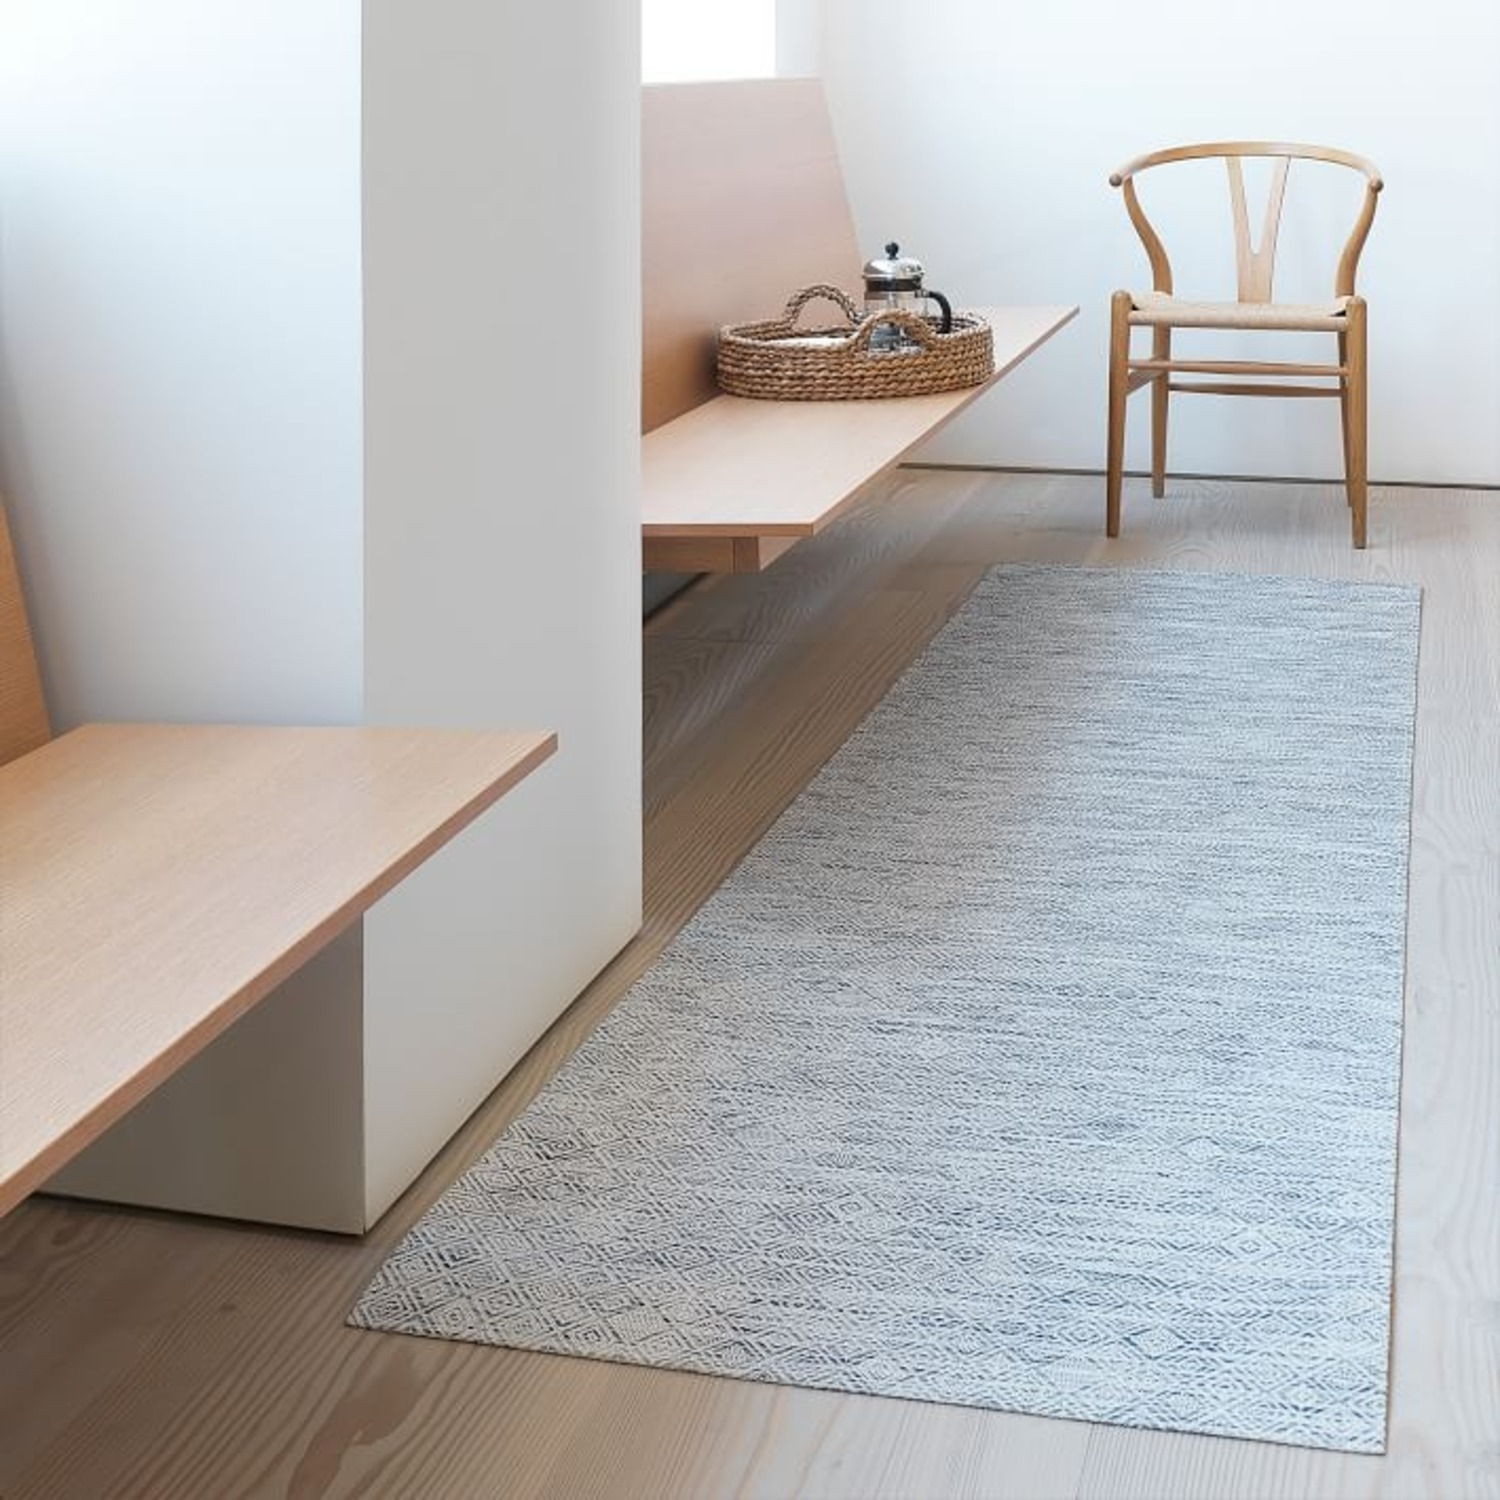 West Elm Chilewich Mosaic Woven Floormat - image-2